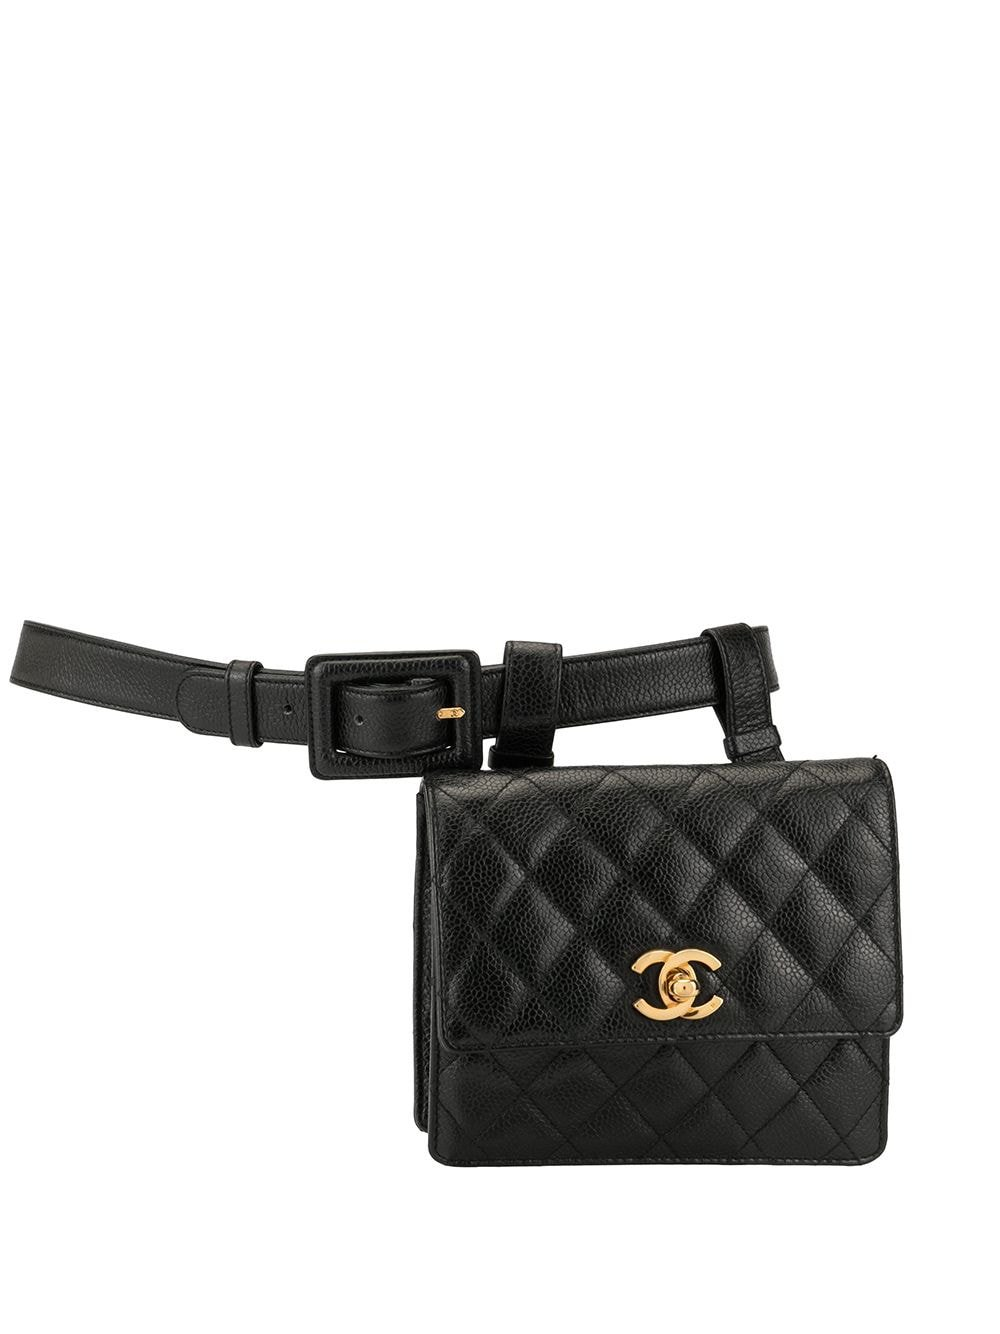 Brown Chanel Pre-Owned 1990s CC Belt Bag | Farfetch.com